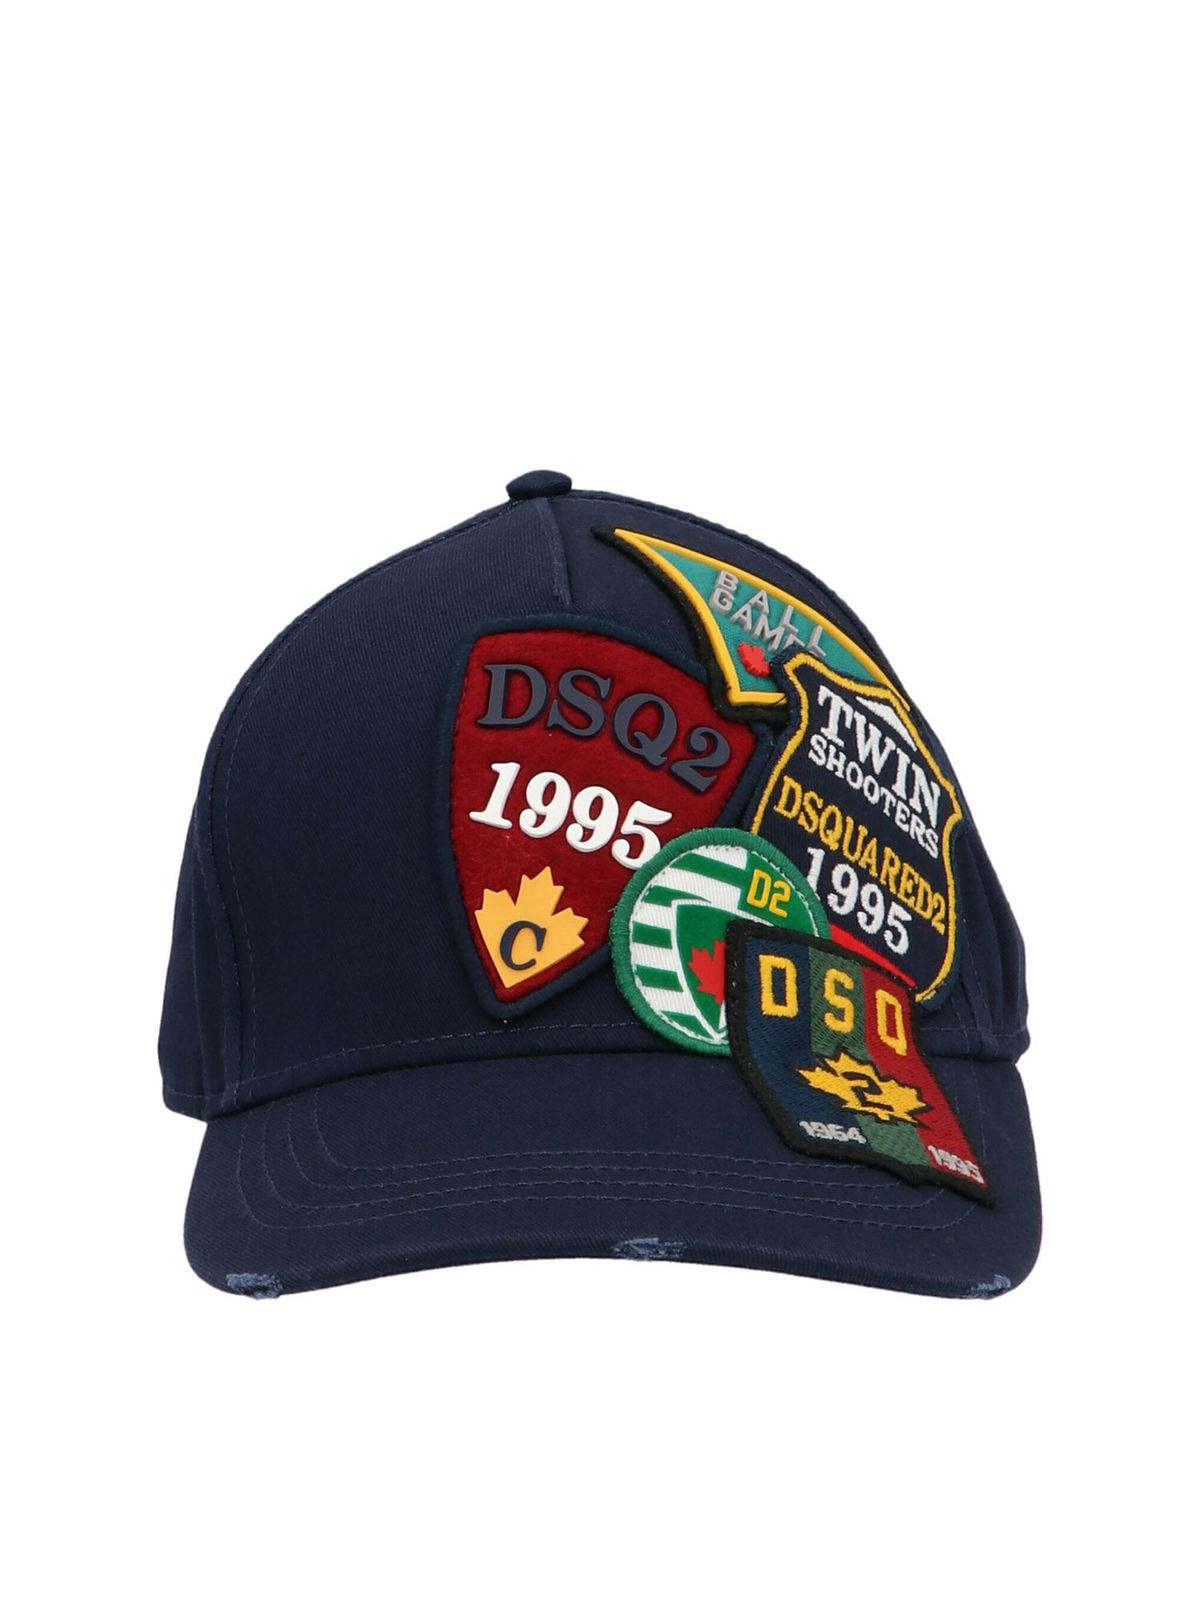 Dsquared2 Caps ALL-OVER PATCH BASEBALL CAP IN BLUE